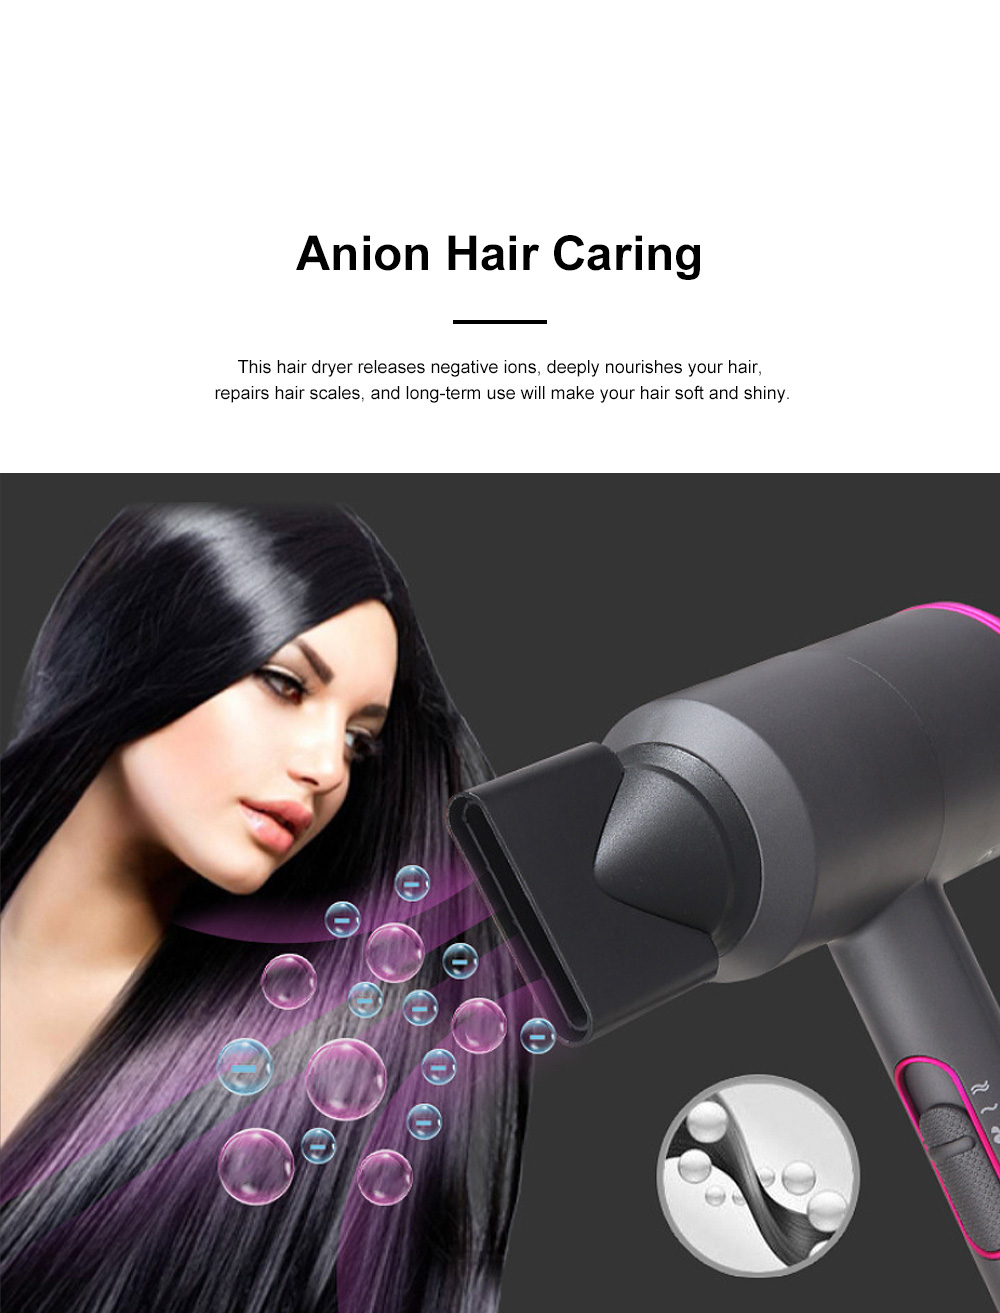 High-Power Household Anion Care Cold Hot Wind Hair Dryer Nonradiative Hair Shaping Modeling Style Tool 2